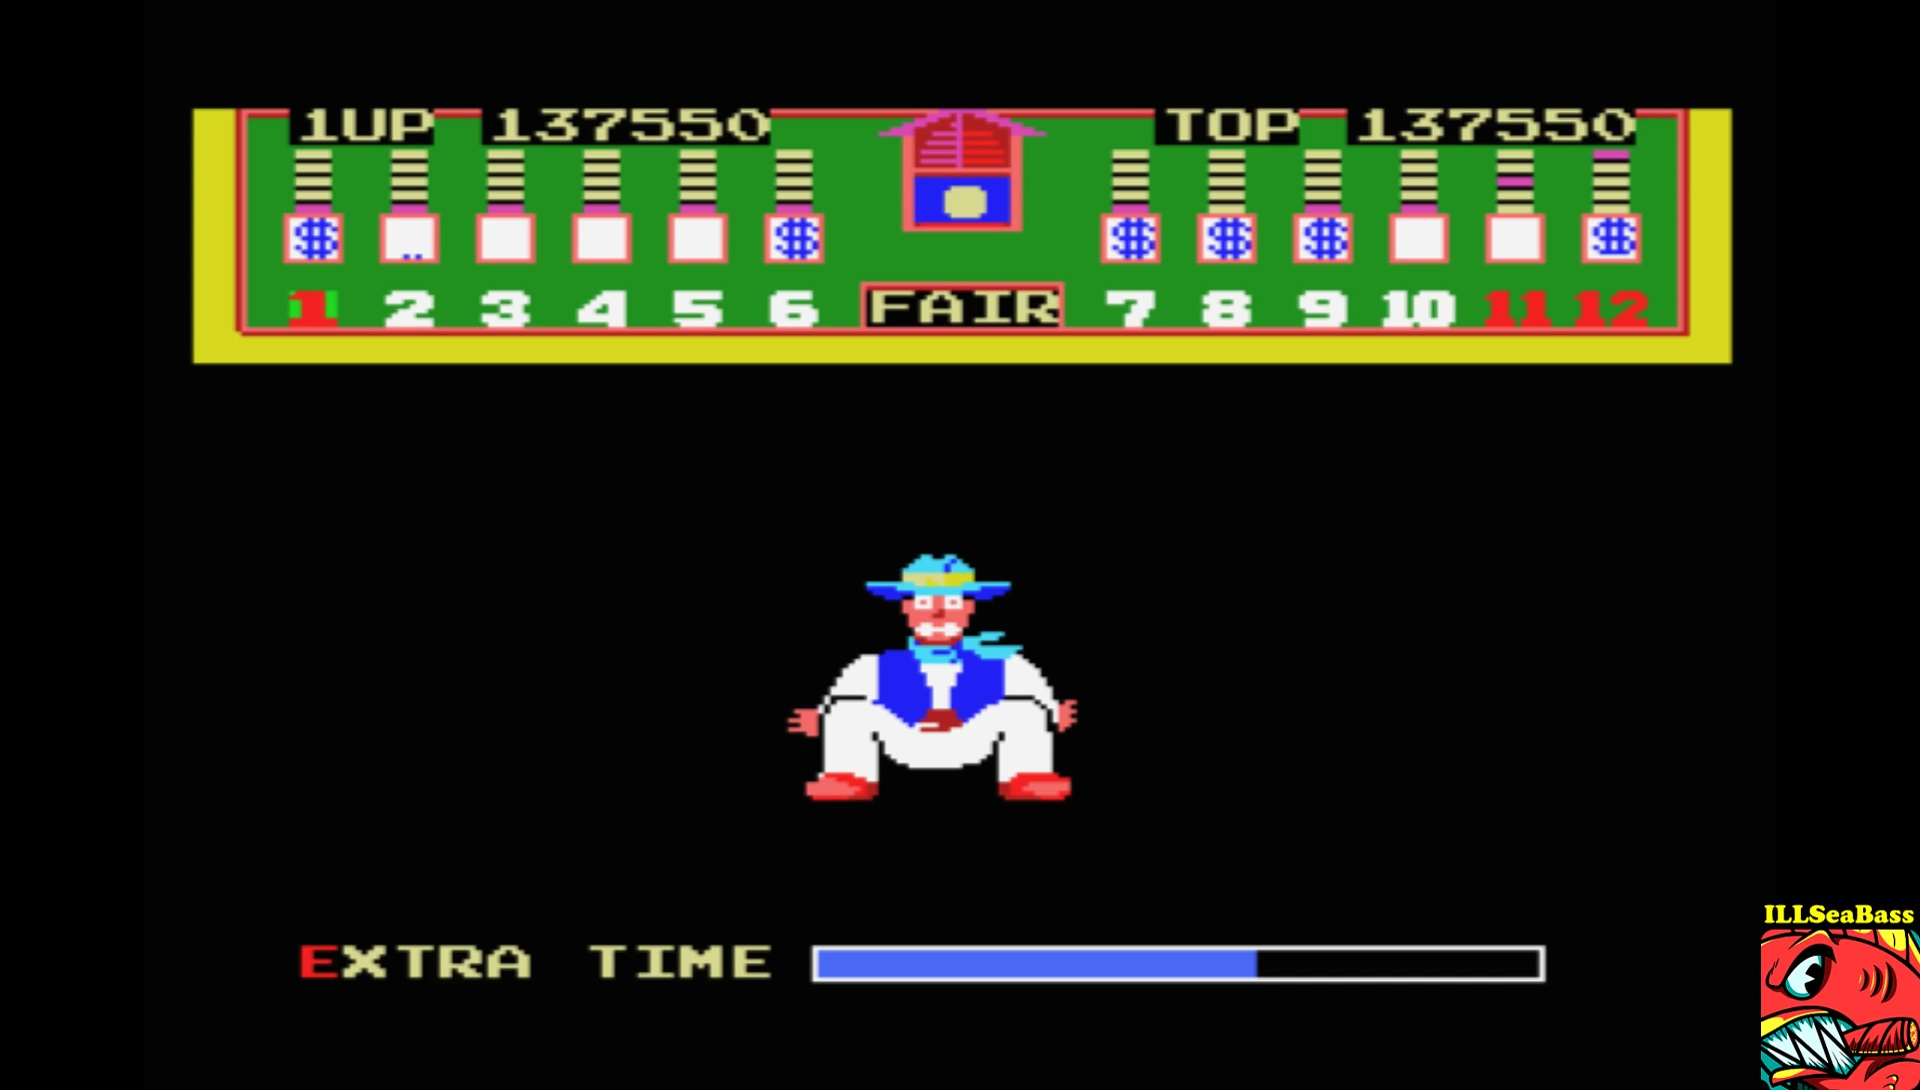 ILLSeaBass: Bank Panic [Level 1 Start] (MSX Emulated) 137,550 points on 2017-07-22 18:12:07